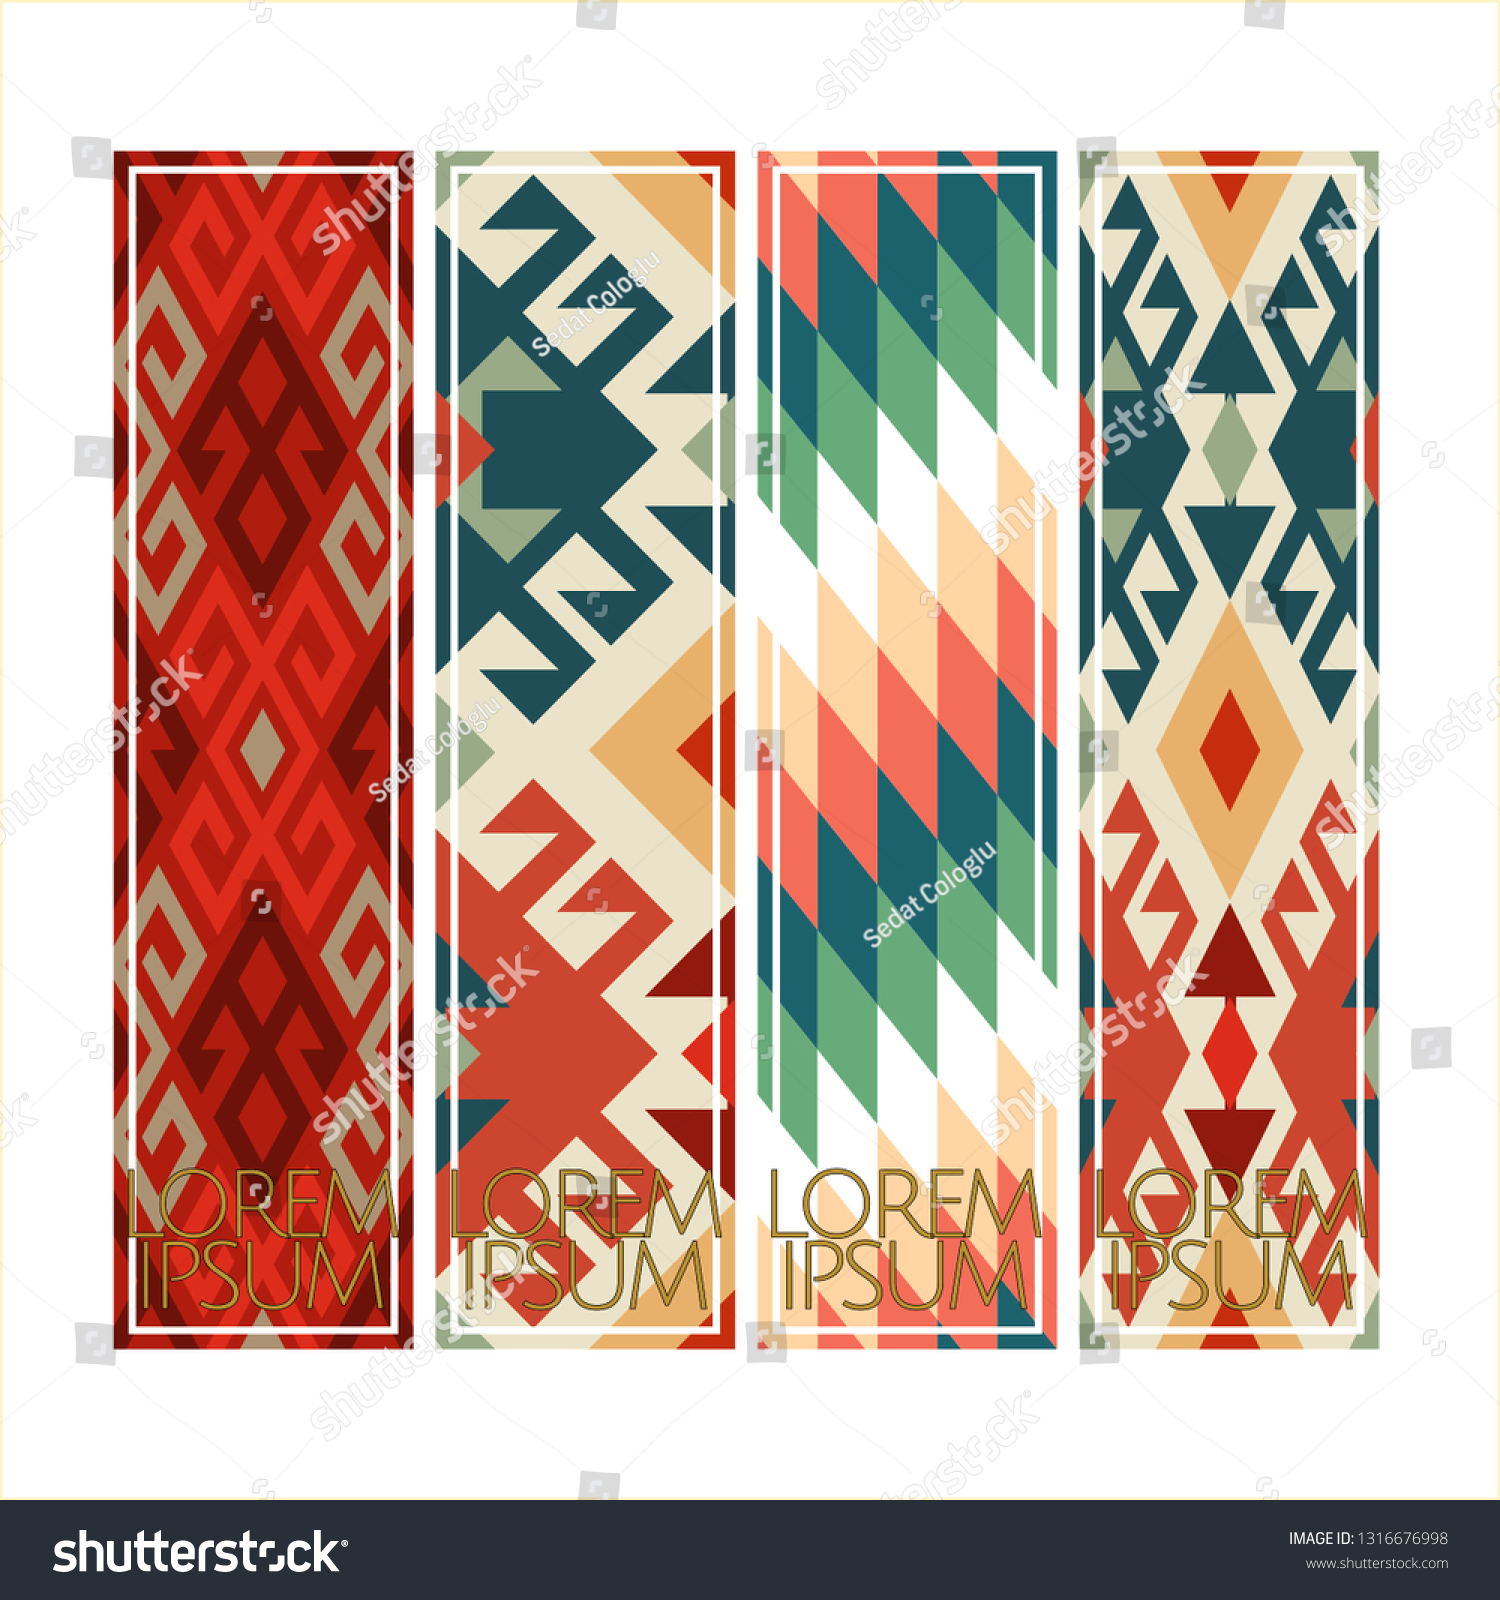 stock-vector-vector-set-of-ornate-vertical-bookmark-cards-in-oriental-turkish-rug-style-it-can-be-used-as-wall-1316676998